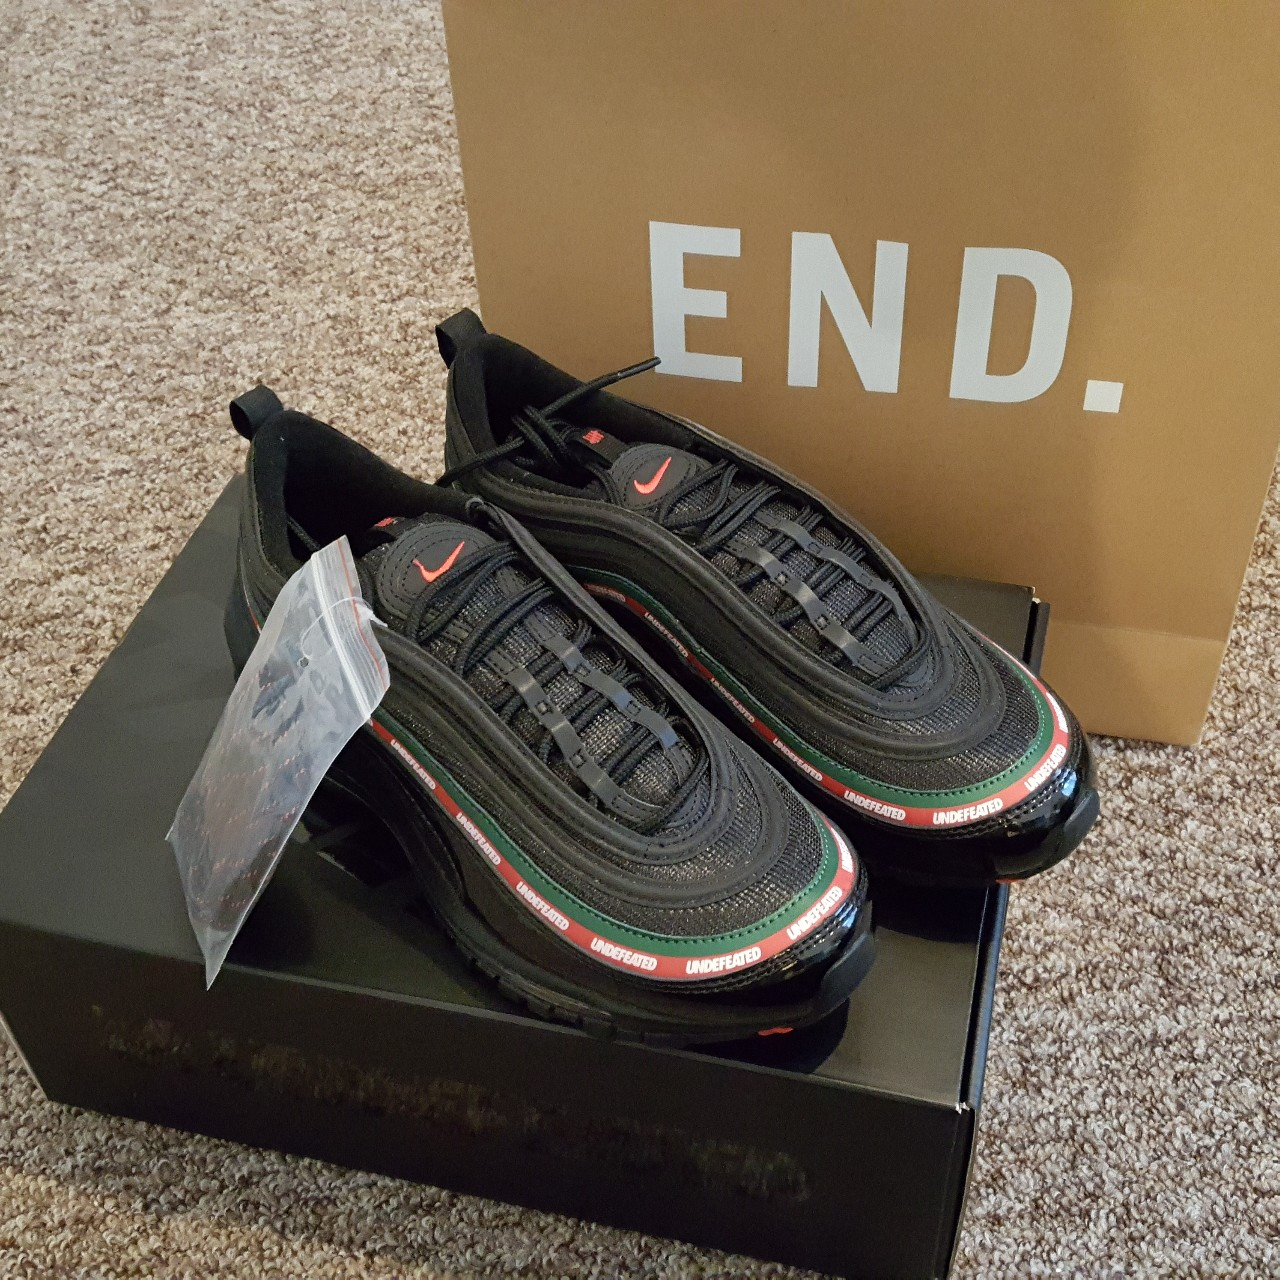 Nike Air Max 97 Undefeated black gucci Depop